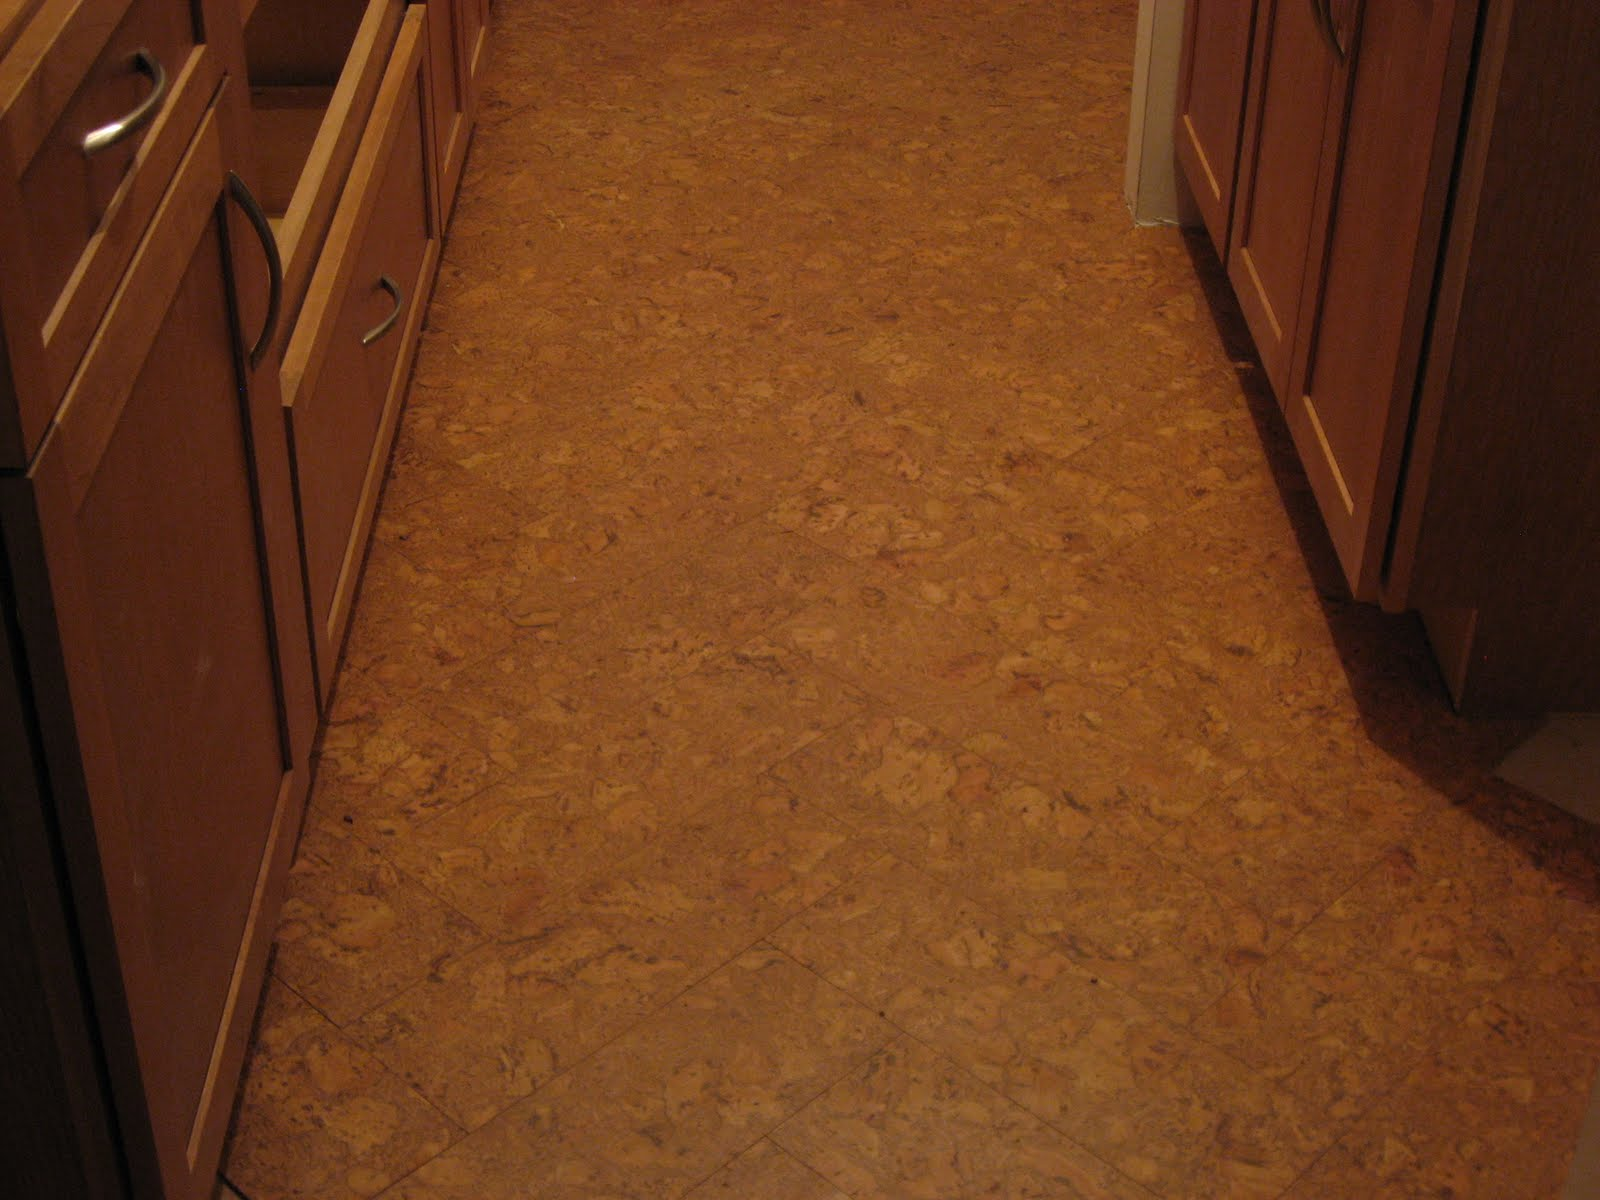 Cork Floors In Bathroom WWW BROWNSEARLE COM